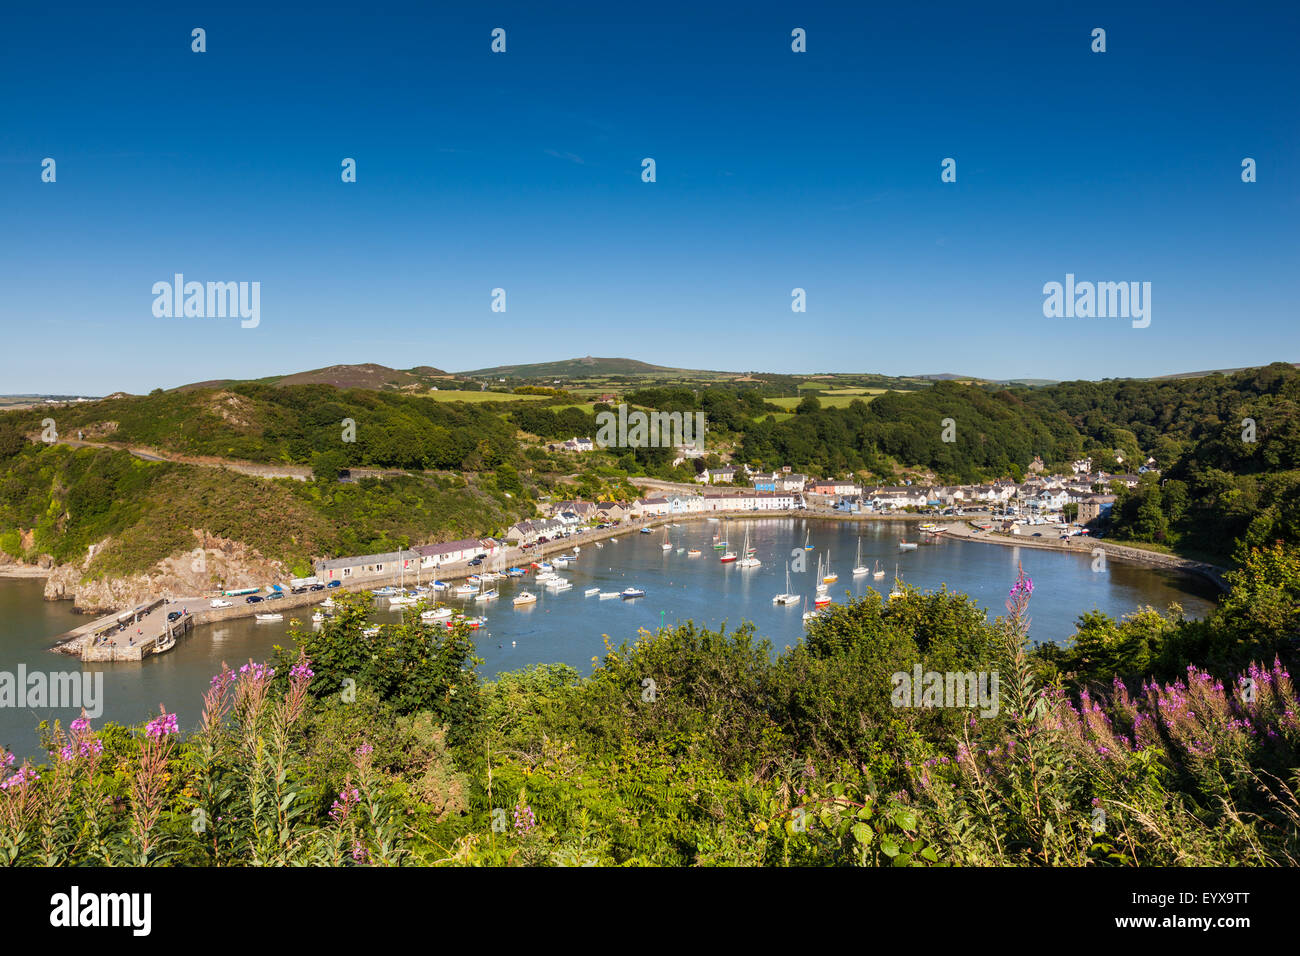 The harbour at Lower Town, Fishguard, Pembrokeshire, Wales, UK - Stock Image